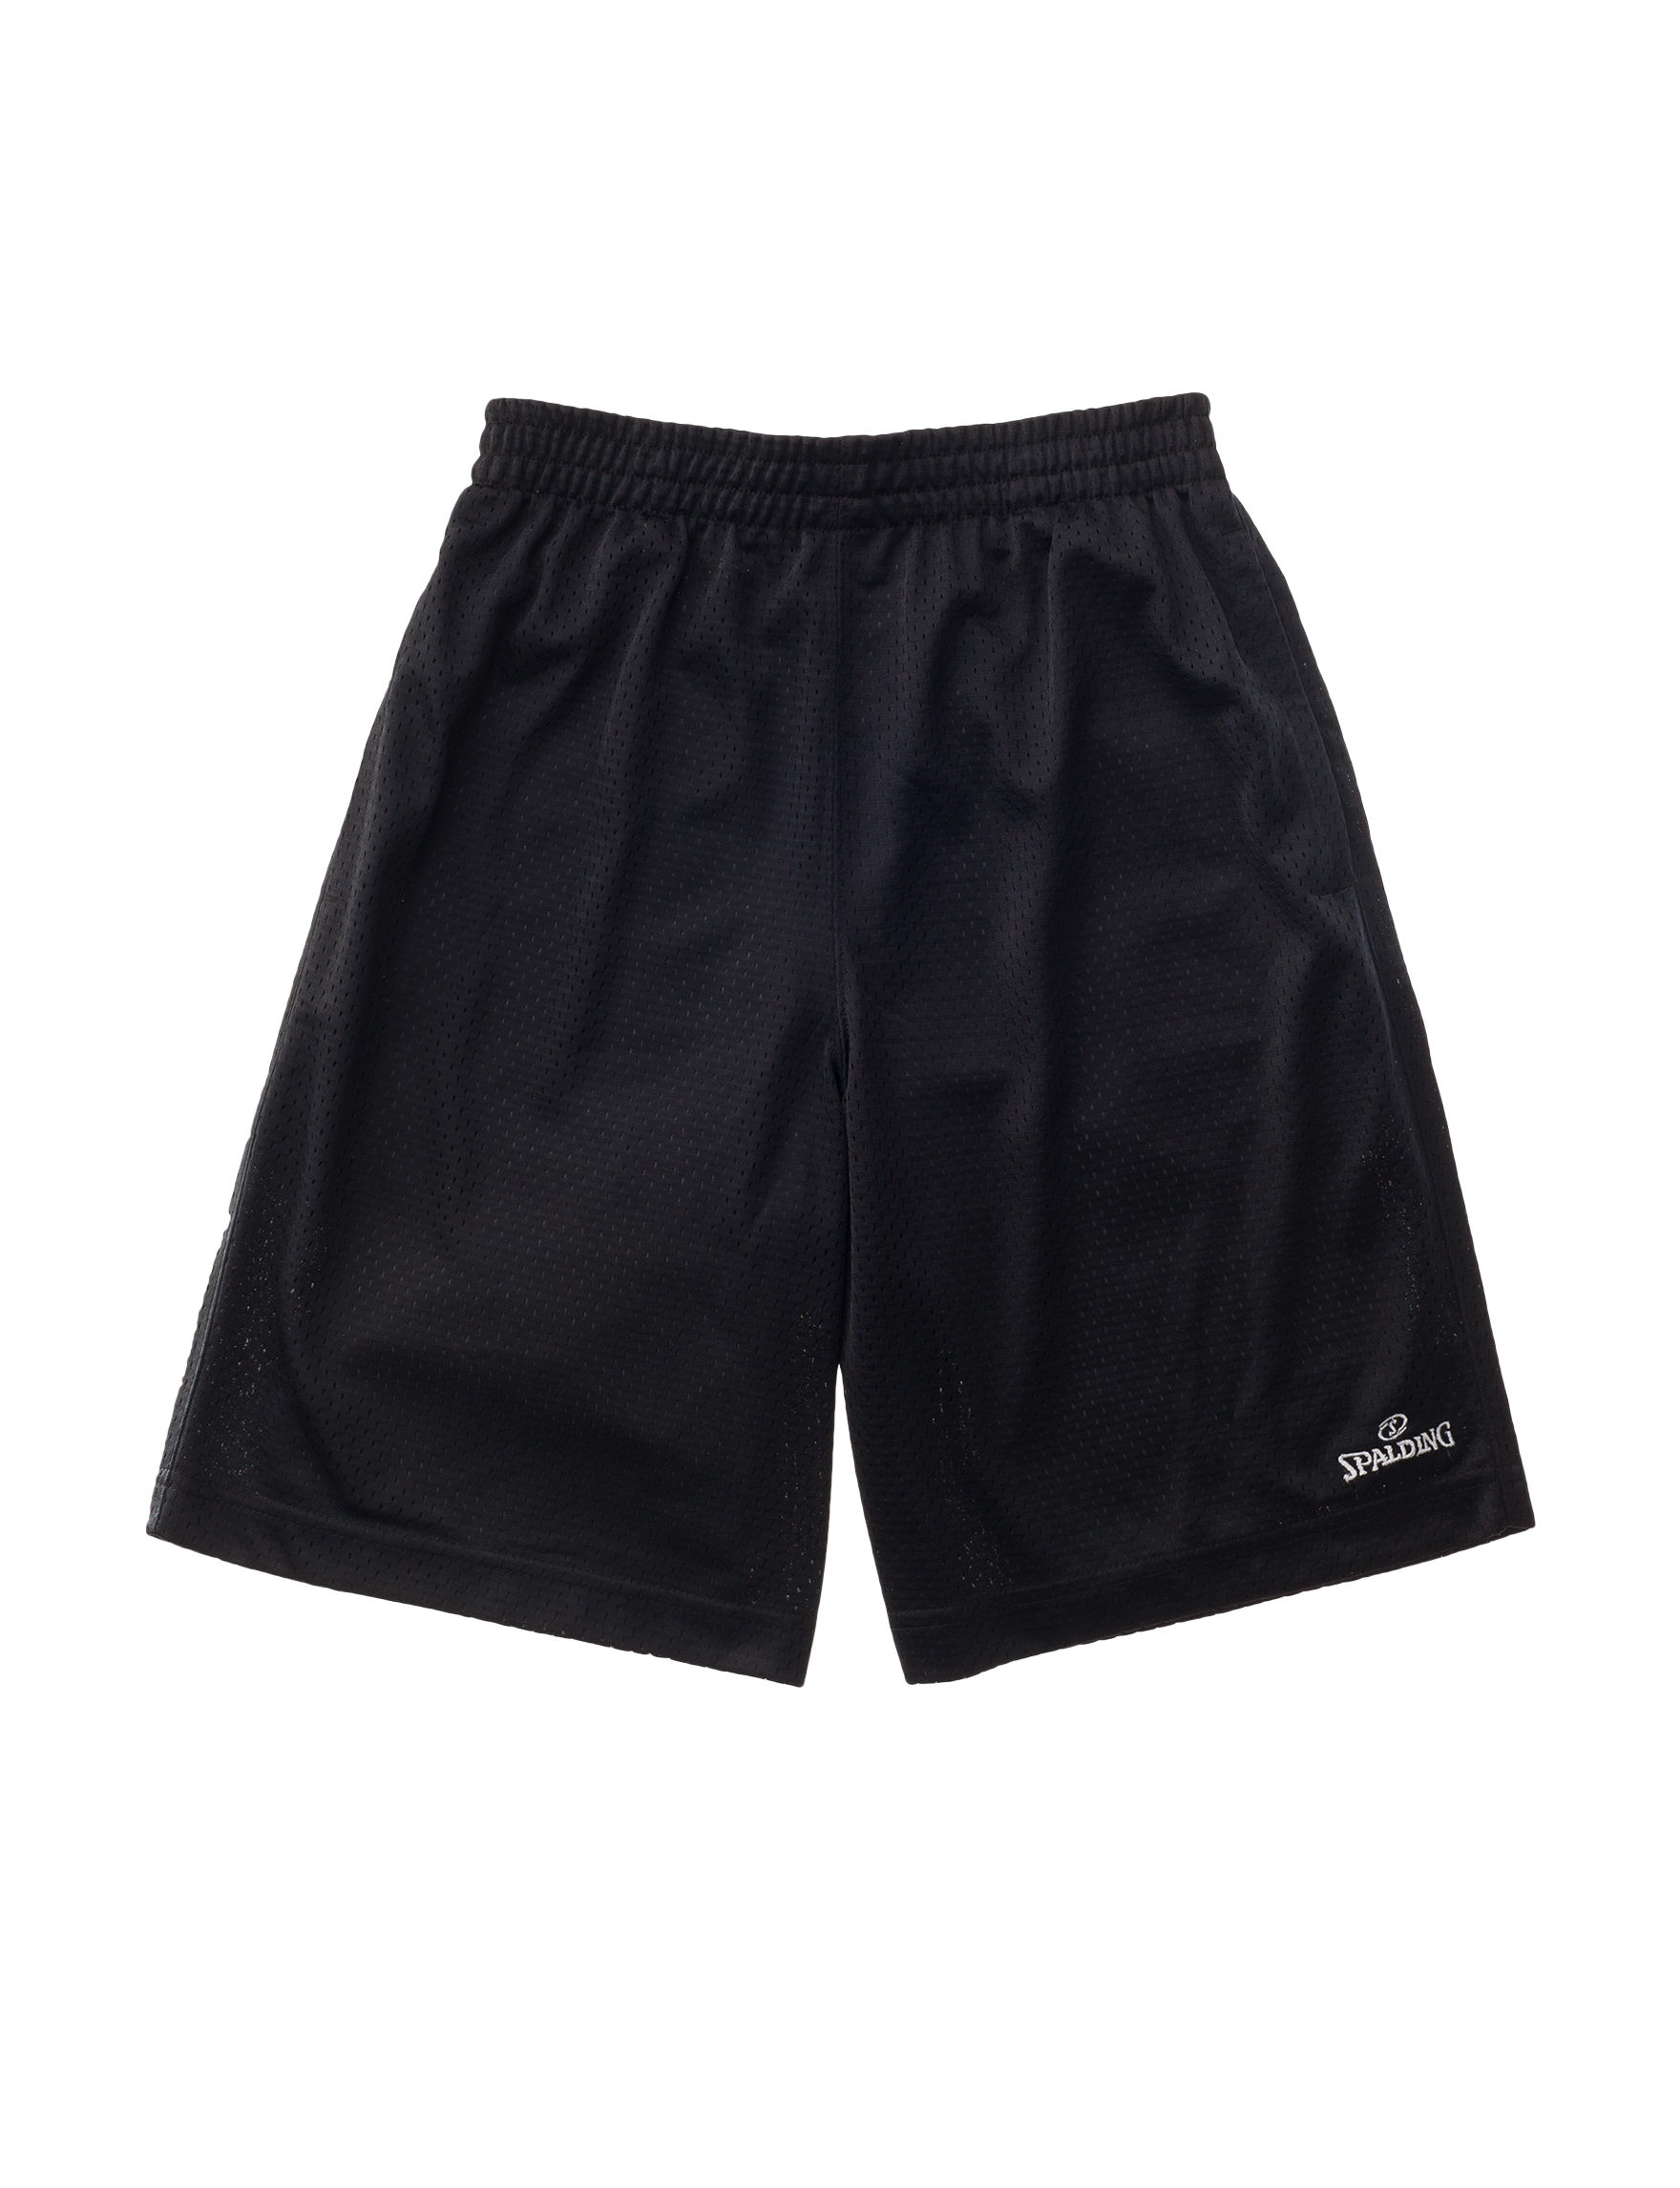 Spalding Black Relaxed